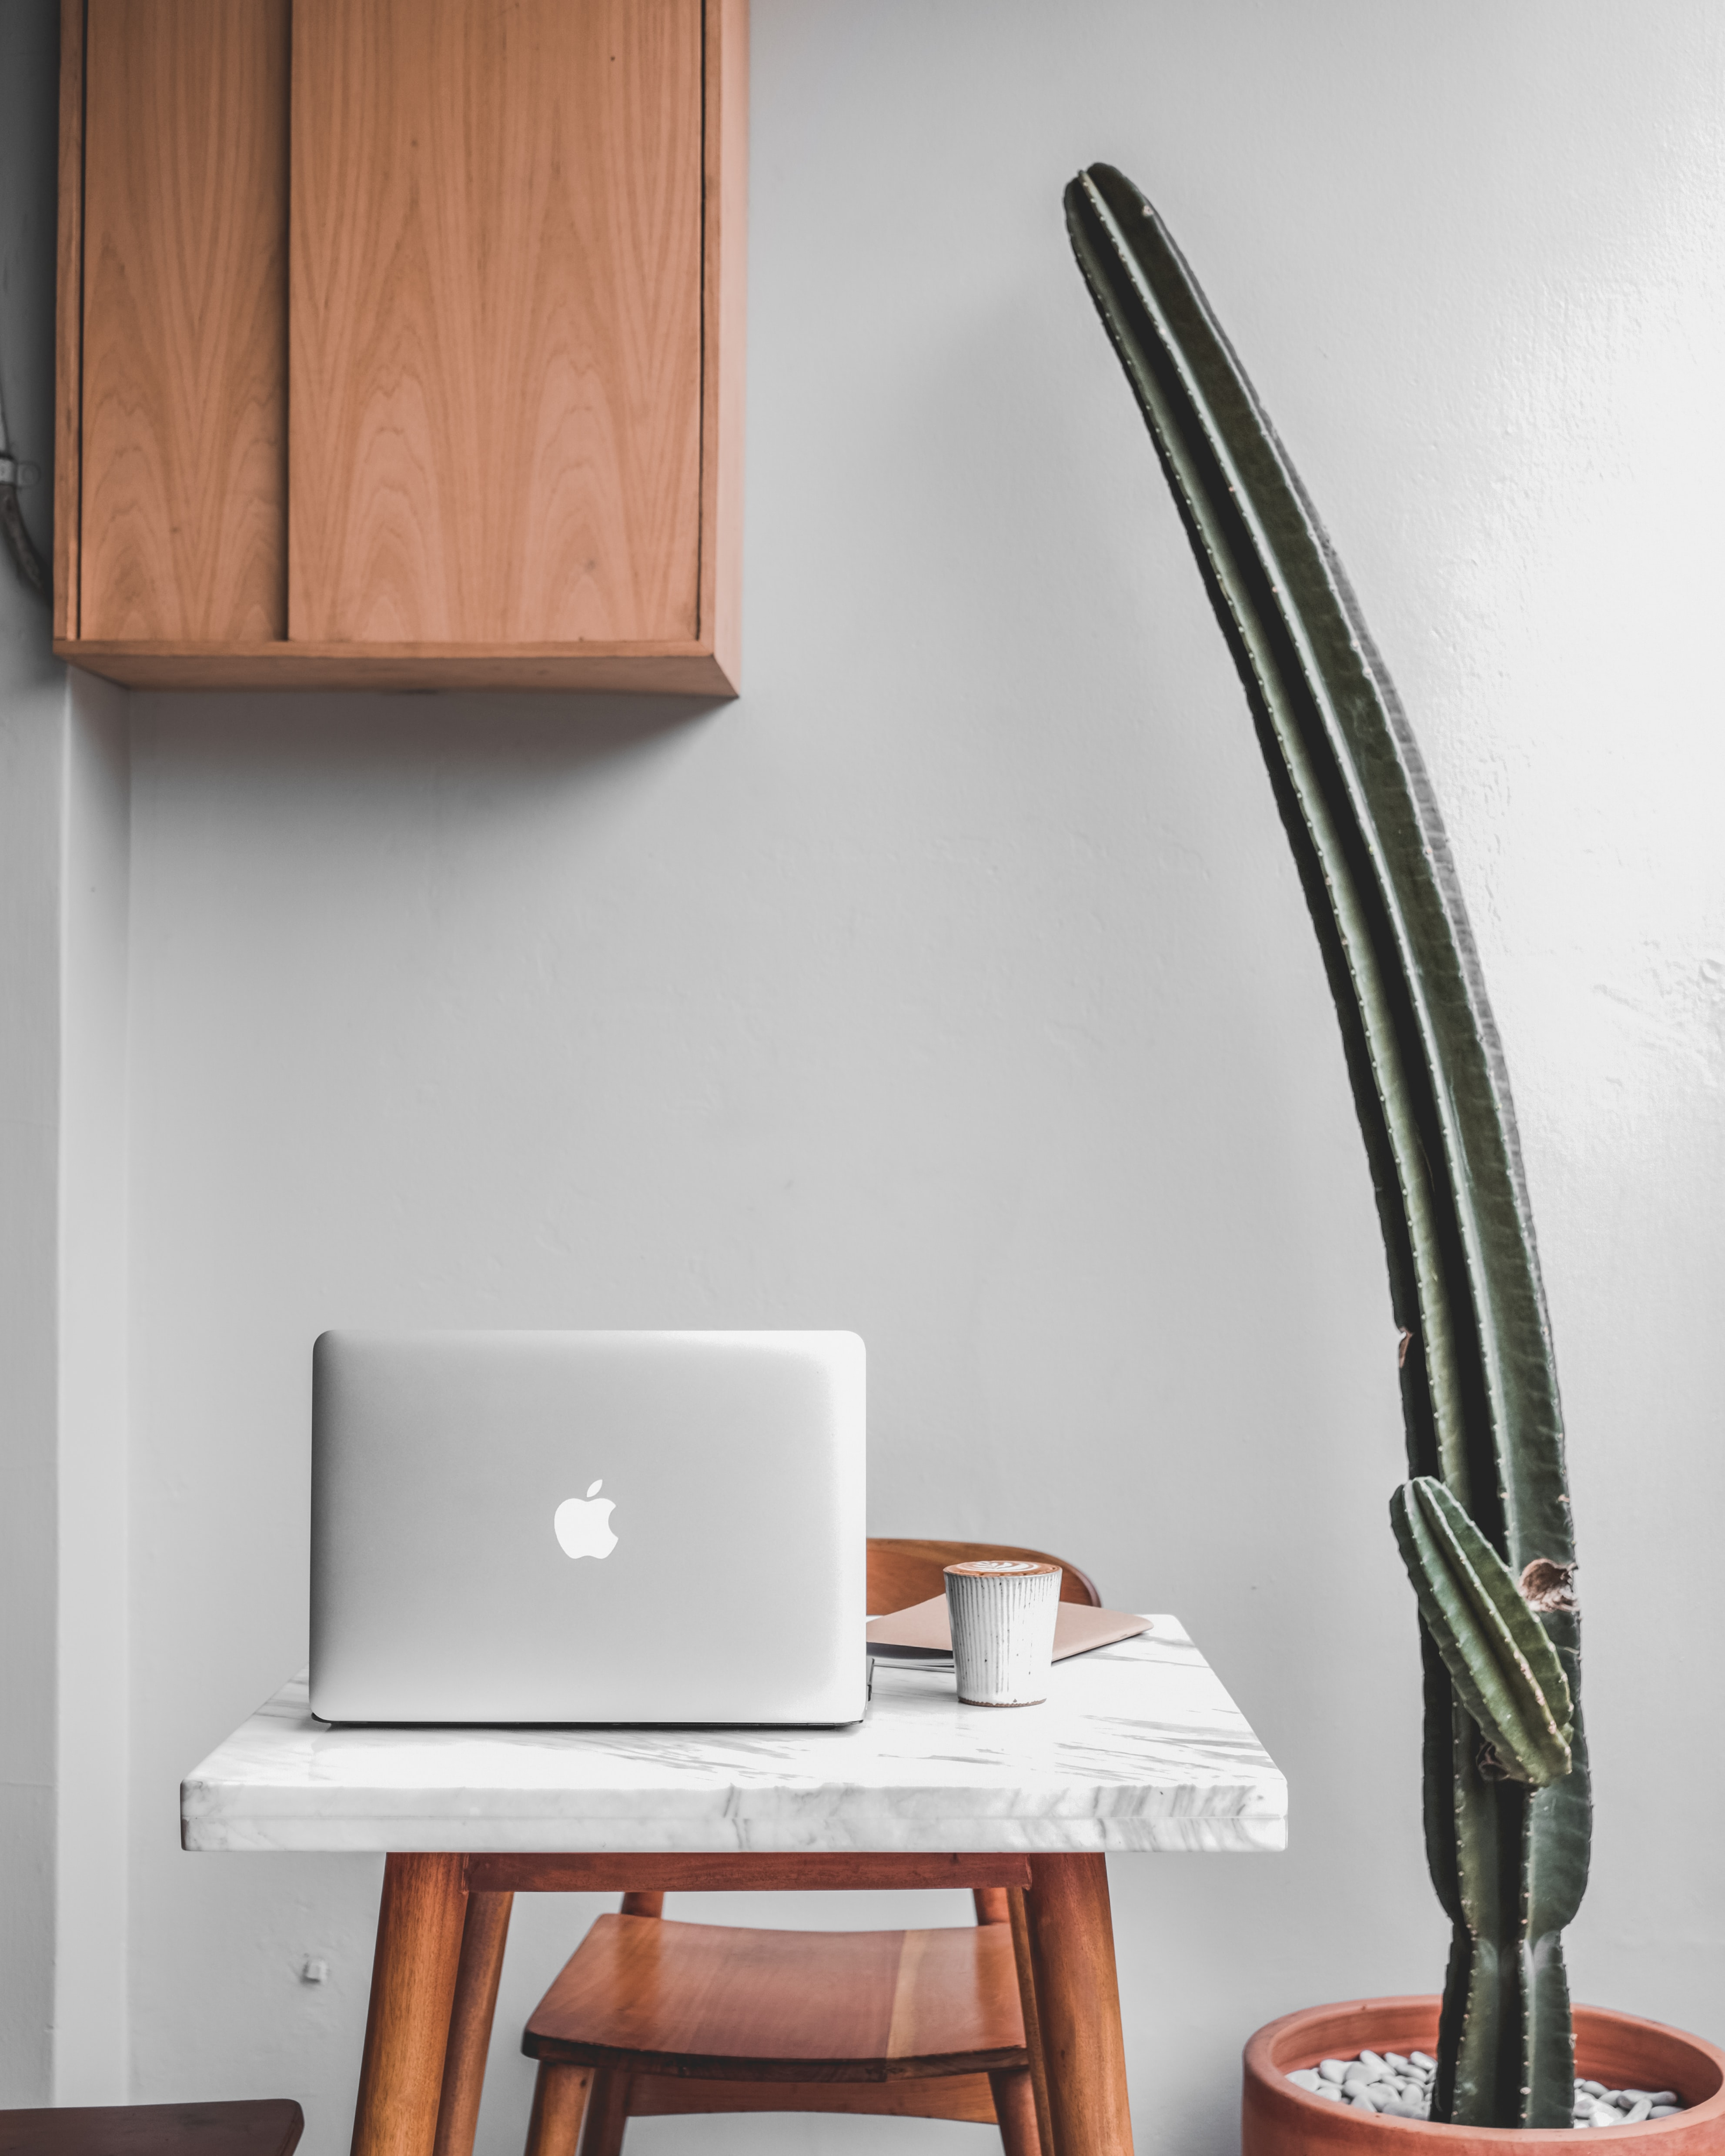 silver iMac on table beside green cactus plant